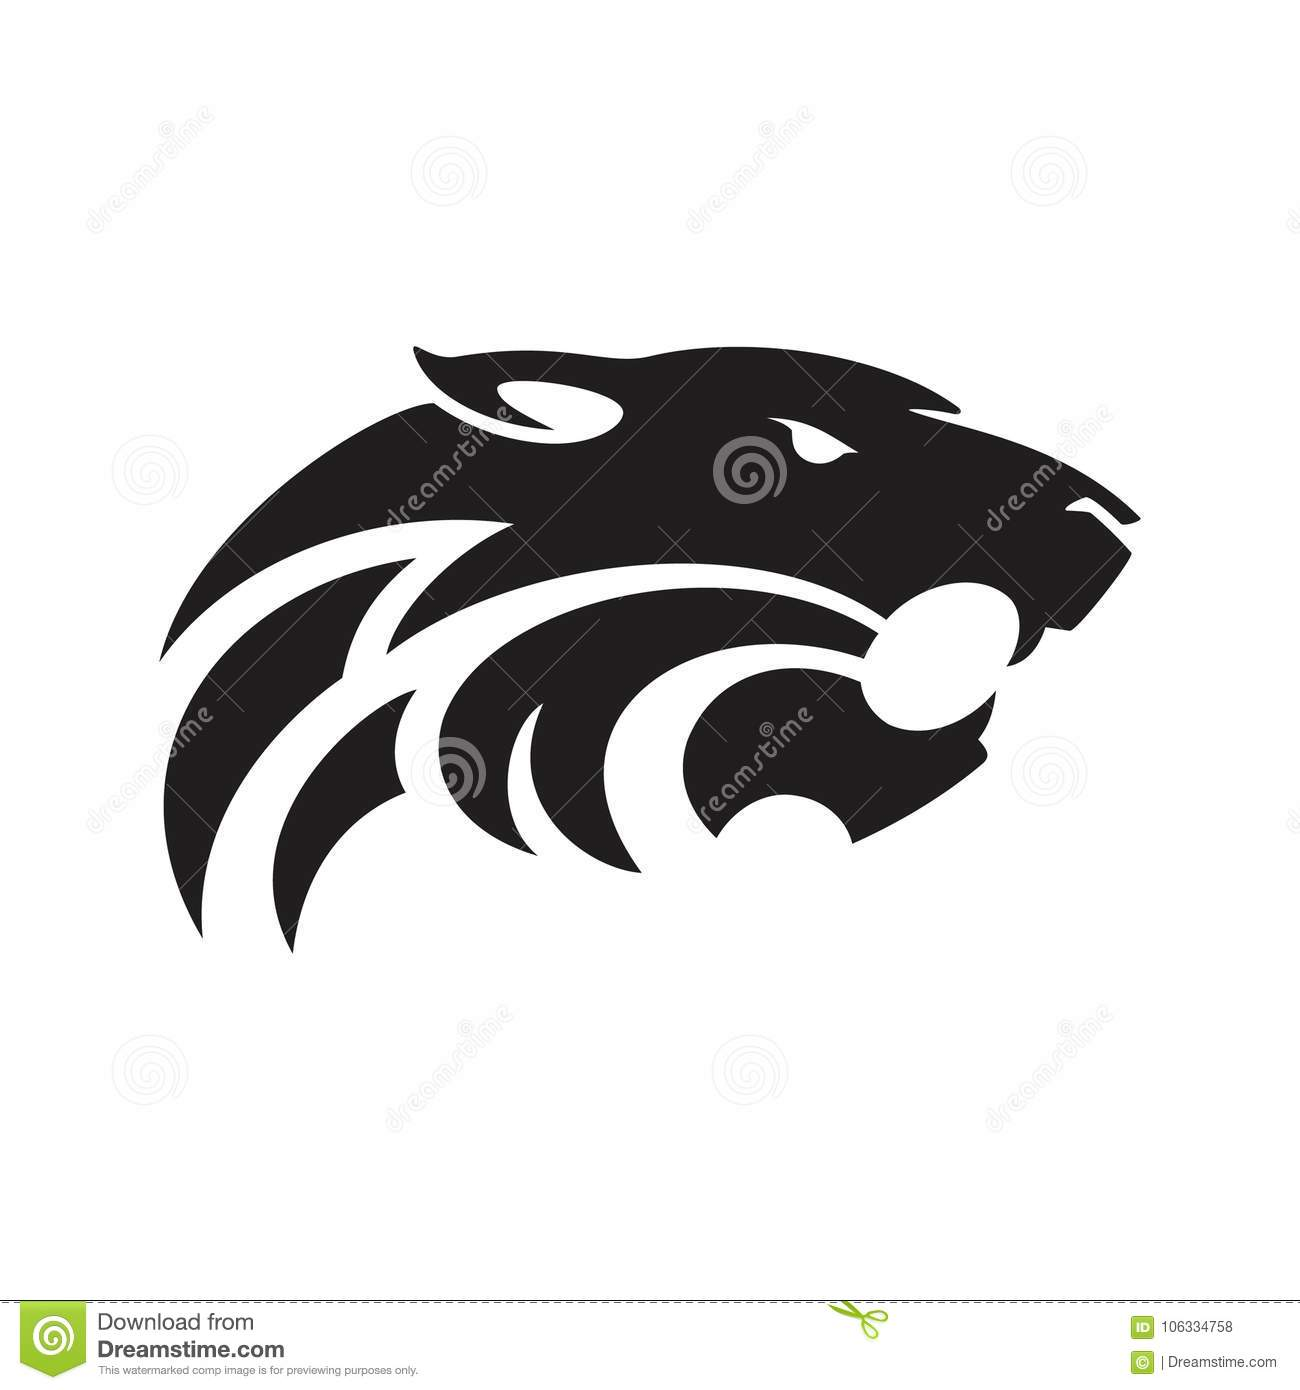 Tiger Silhouette Stock Illustrations 10 214 Tiger Silhouette Stock Illustrations Vectors Clipart Dreamstime All png & cliparts images on nicepng are best quality. https www dreamstime com logo head tiger silhouette eps format tiger head logo concept illustration classic graphic style tiger head silhouette image106334758